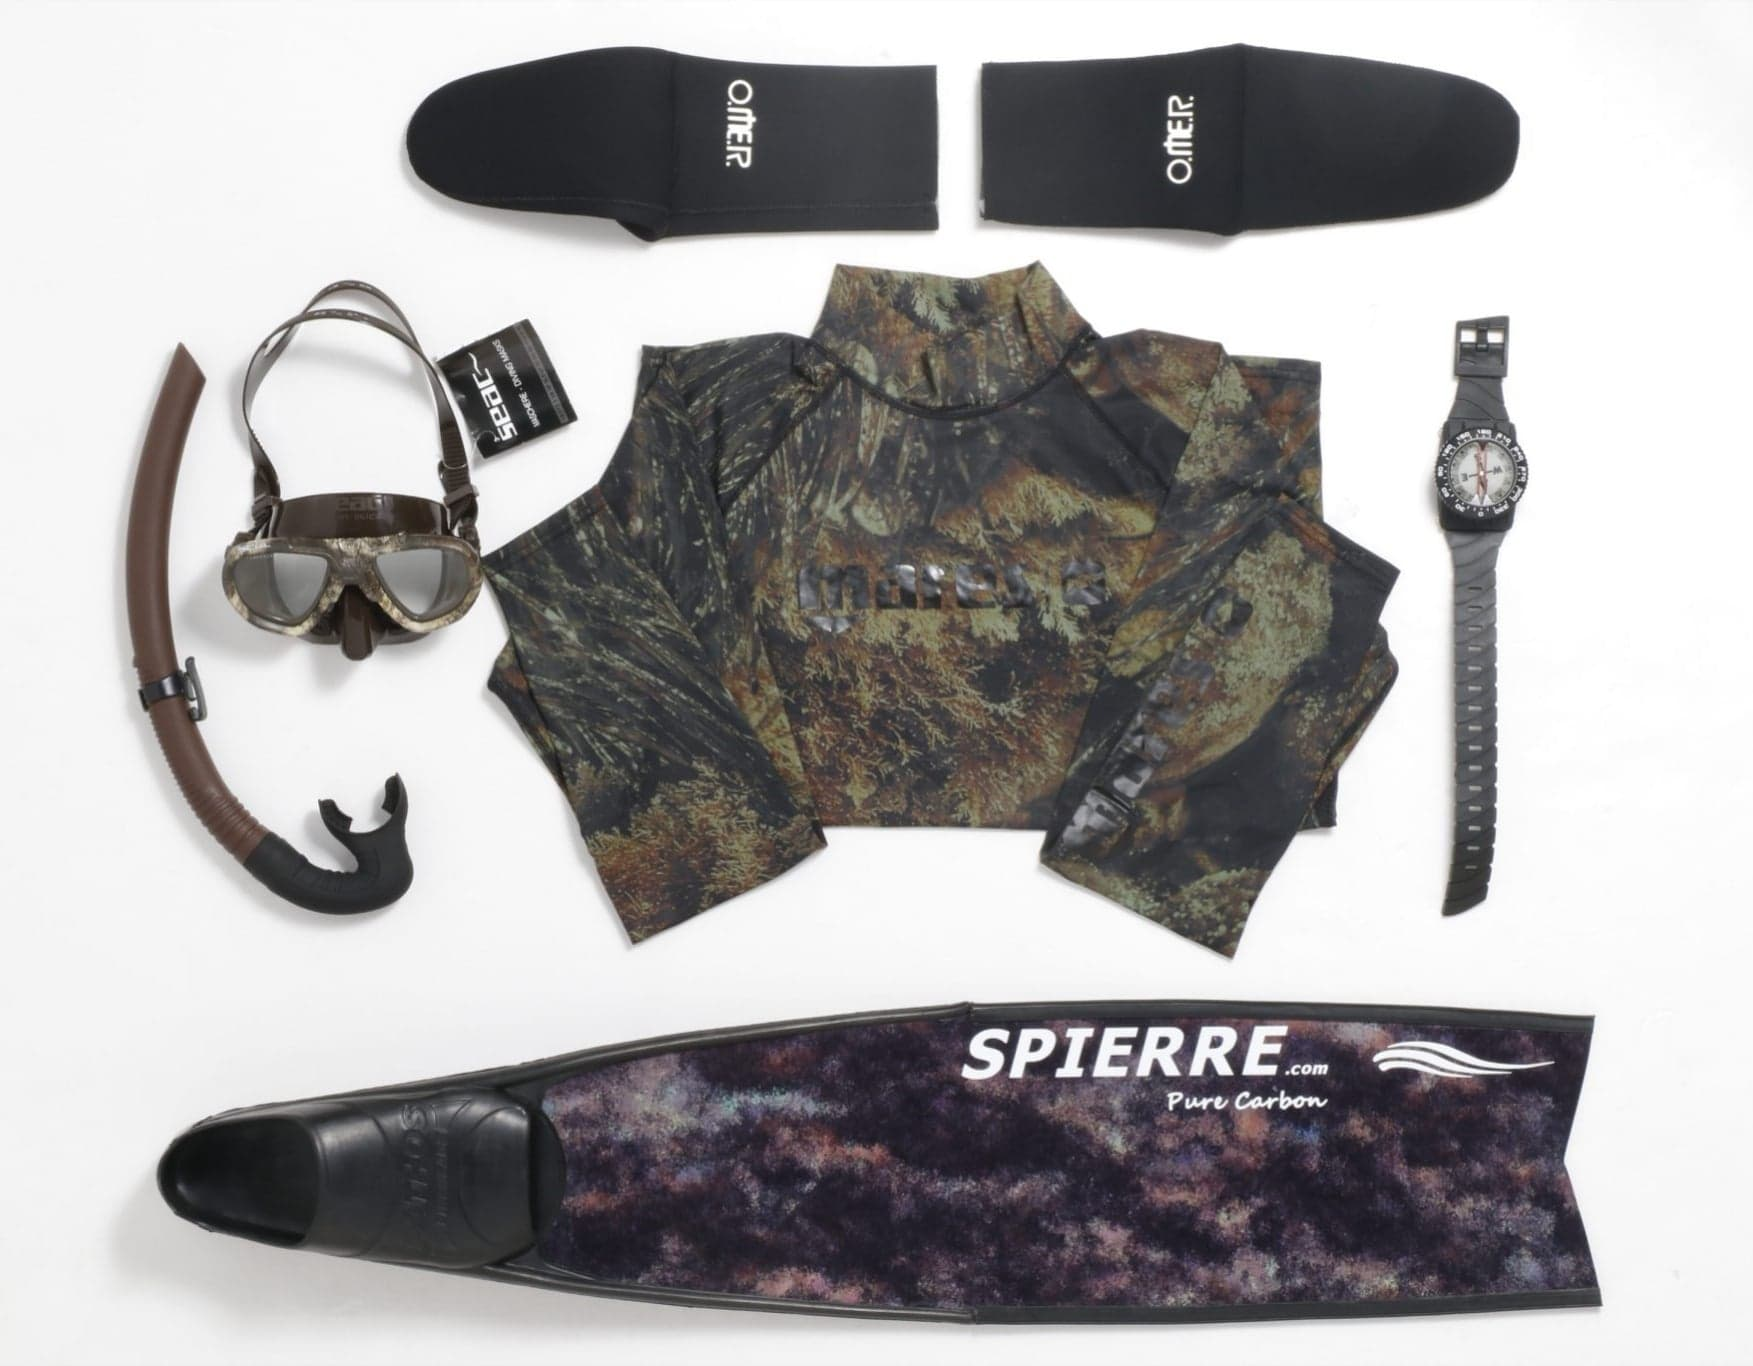 Spierre Power Spearfishing Range